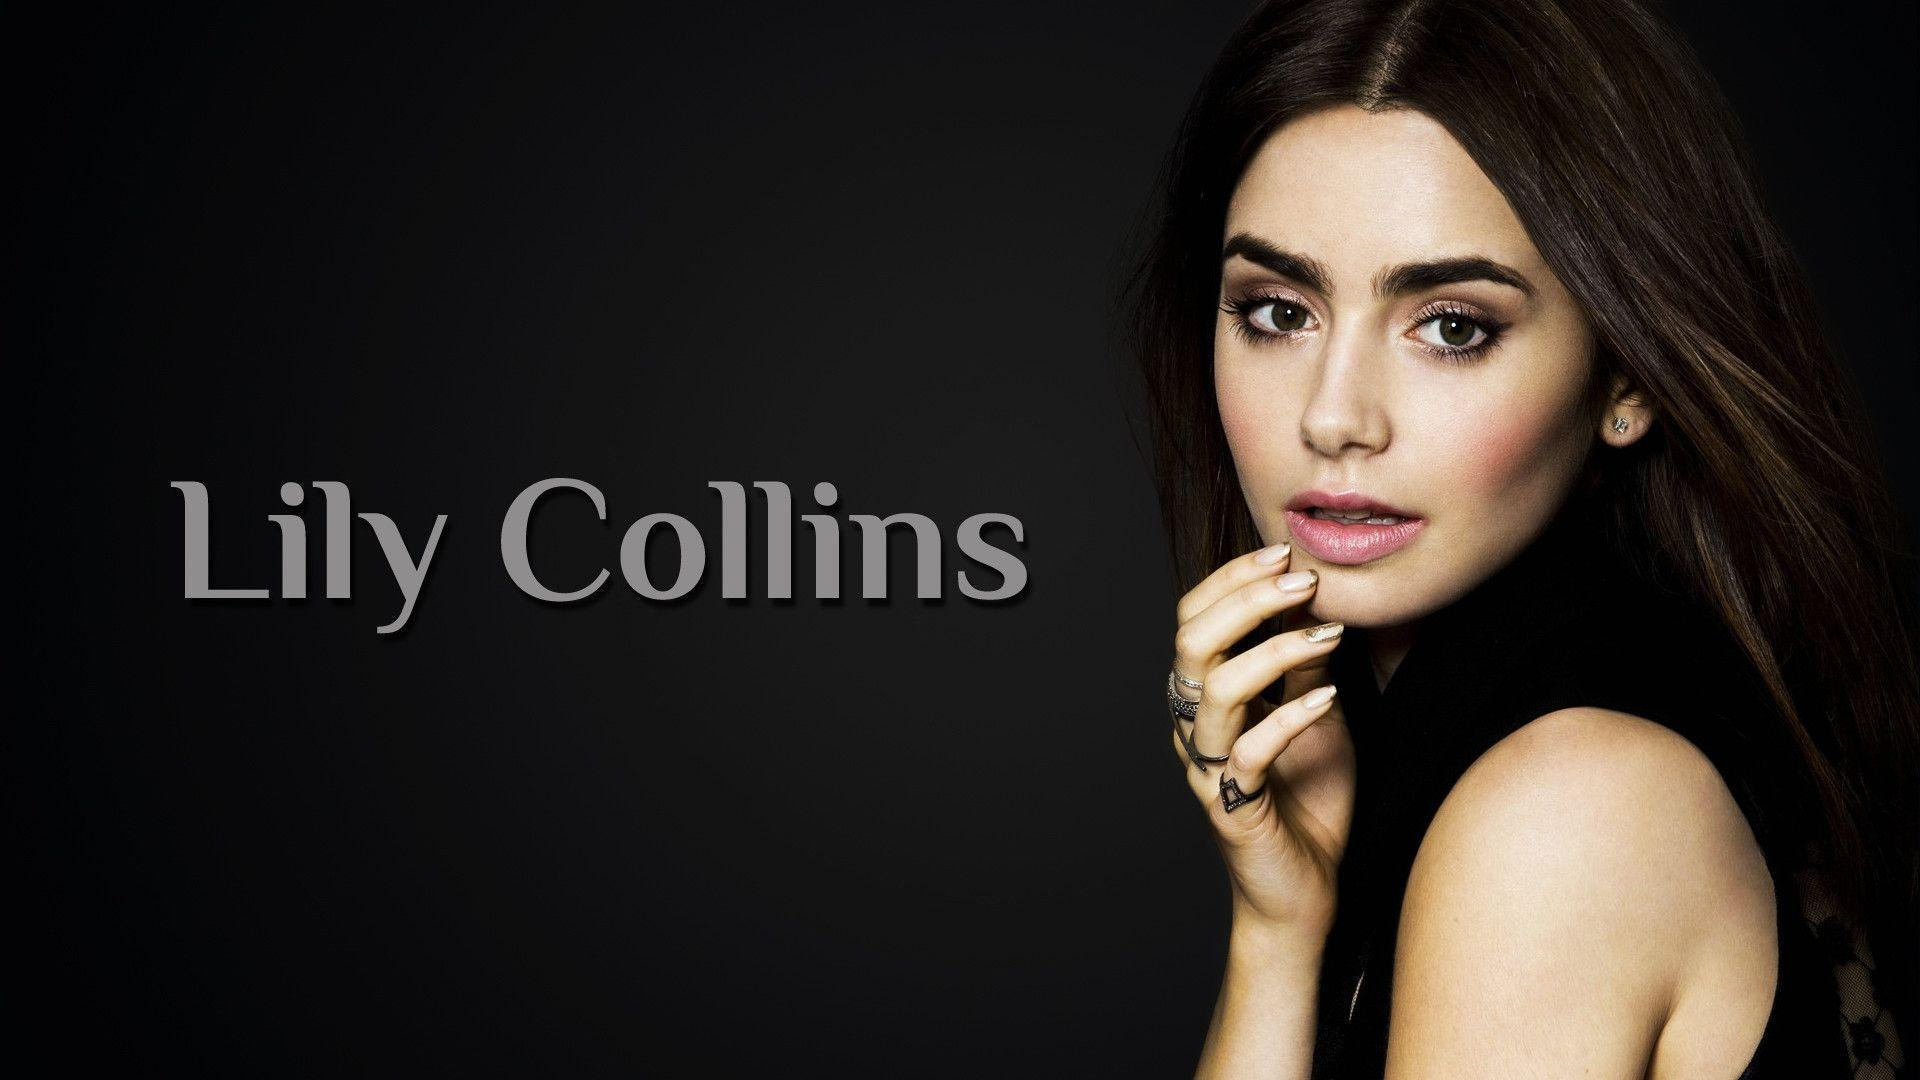 lily collins hd - photo #19